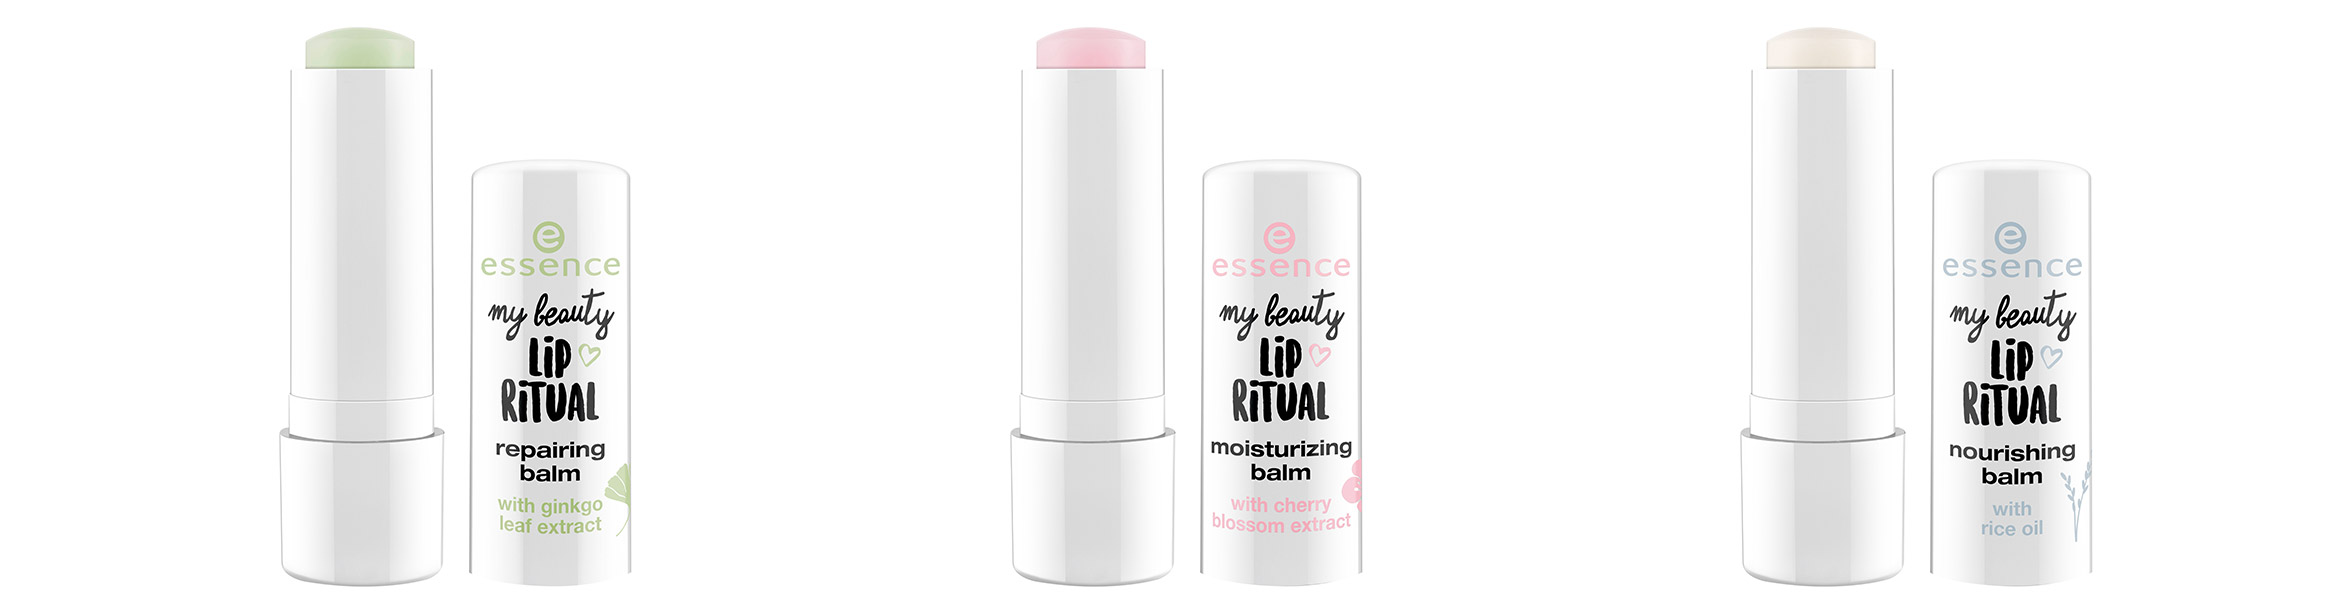 essence-my-beauty-lip-ritual-balms-collectie-2019